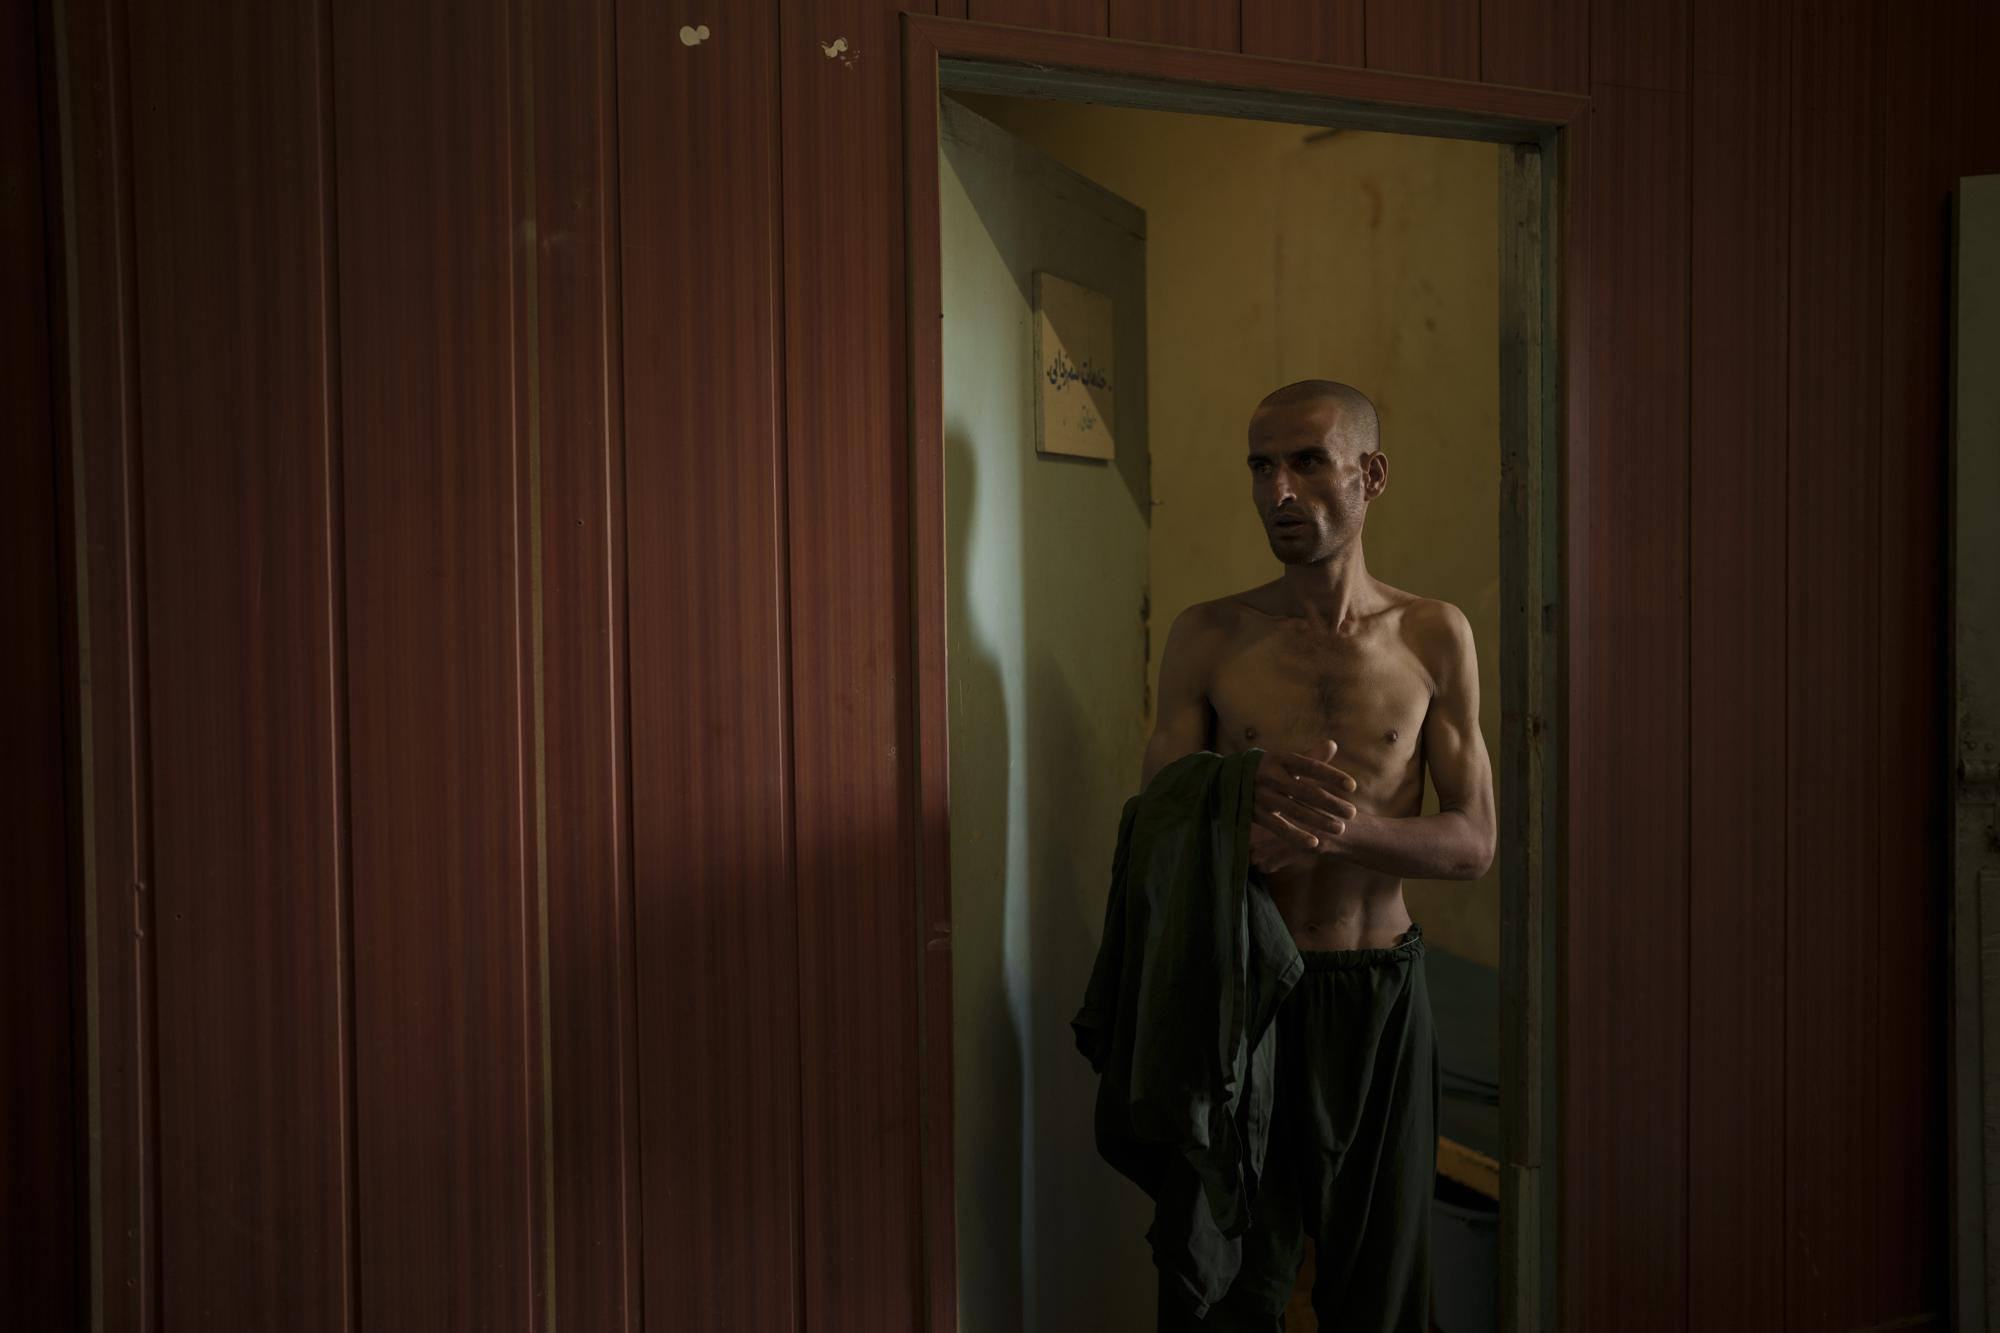 Taliban invokes Islam to weed out drugs from Afghanistan war begins with shaved heads for addicts